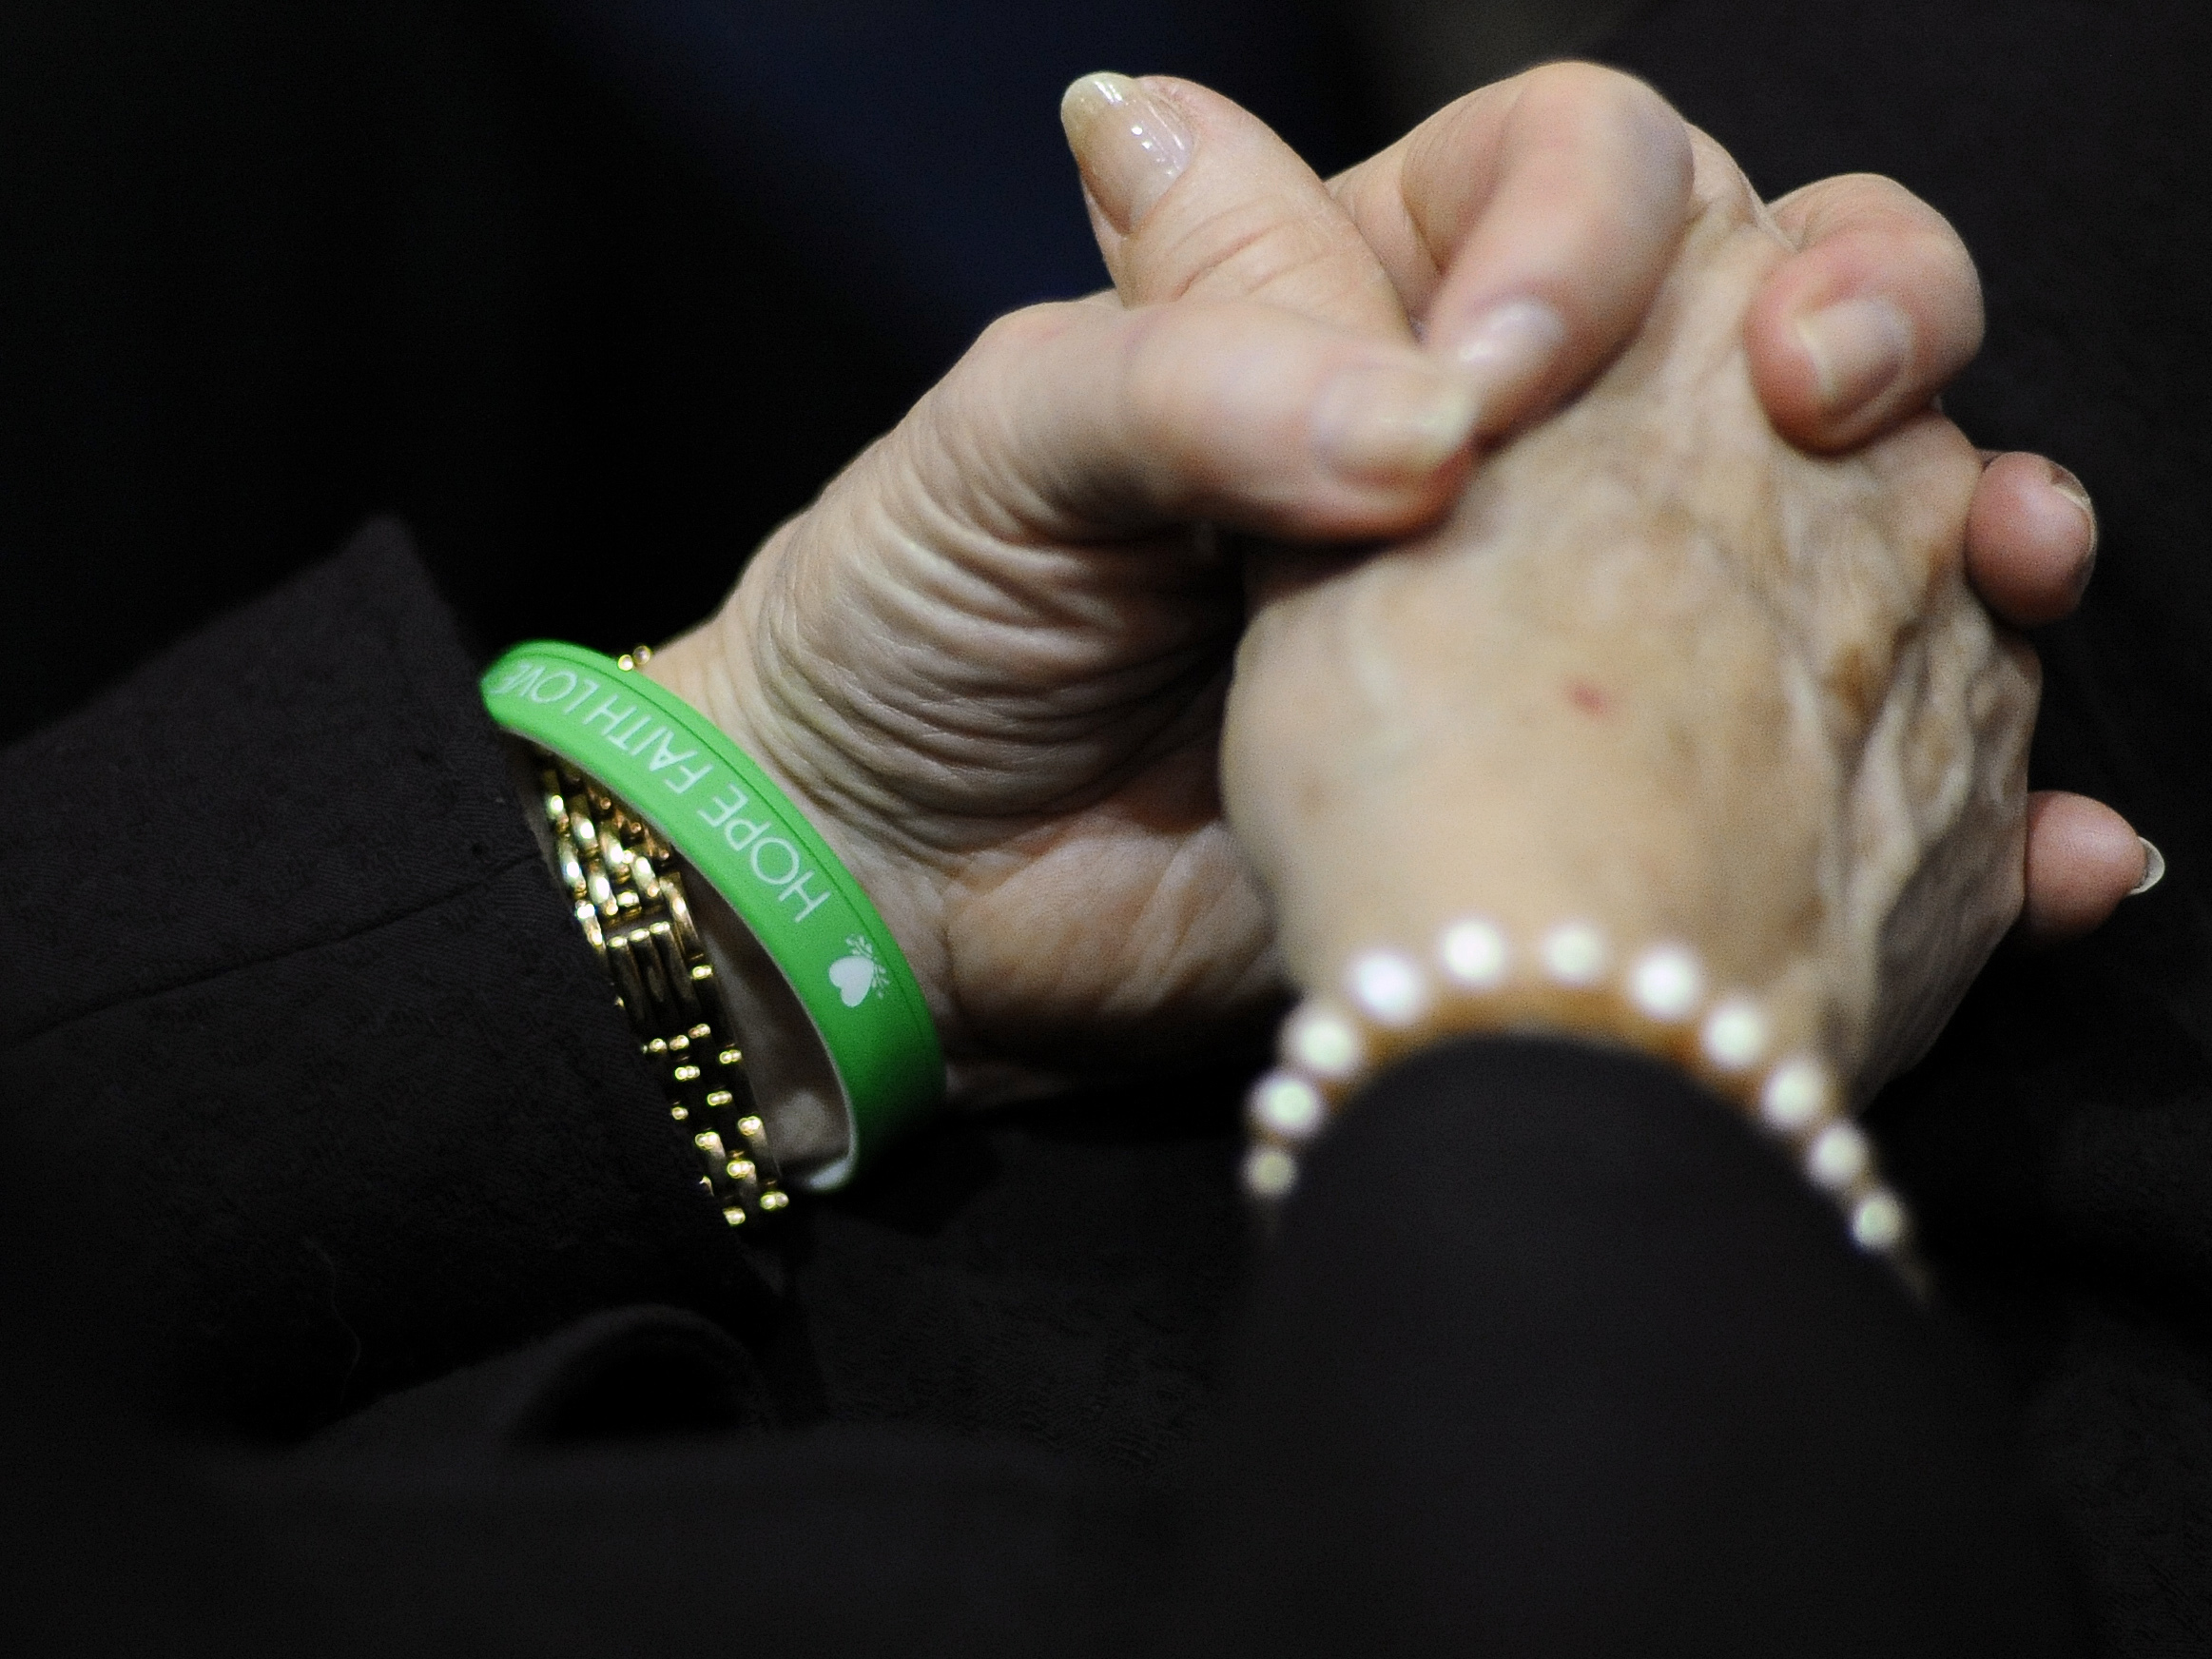 Newtown Schools Superintendent Janet Robinson wears a bracelet reading Hope, Faith, Love in the school colors of Sandy Hook Elementary during Gov. Dannel Malloy's State of the State address at the Capitol in Hartford, Conn., on Wednesday.